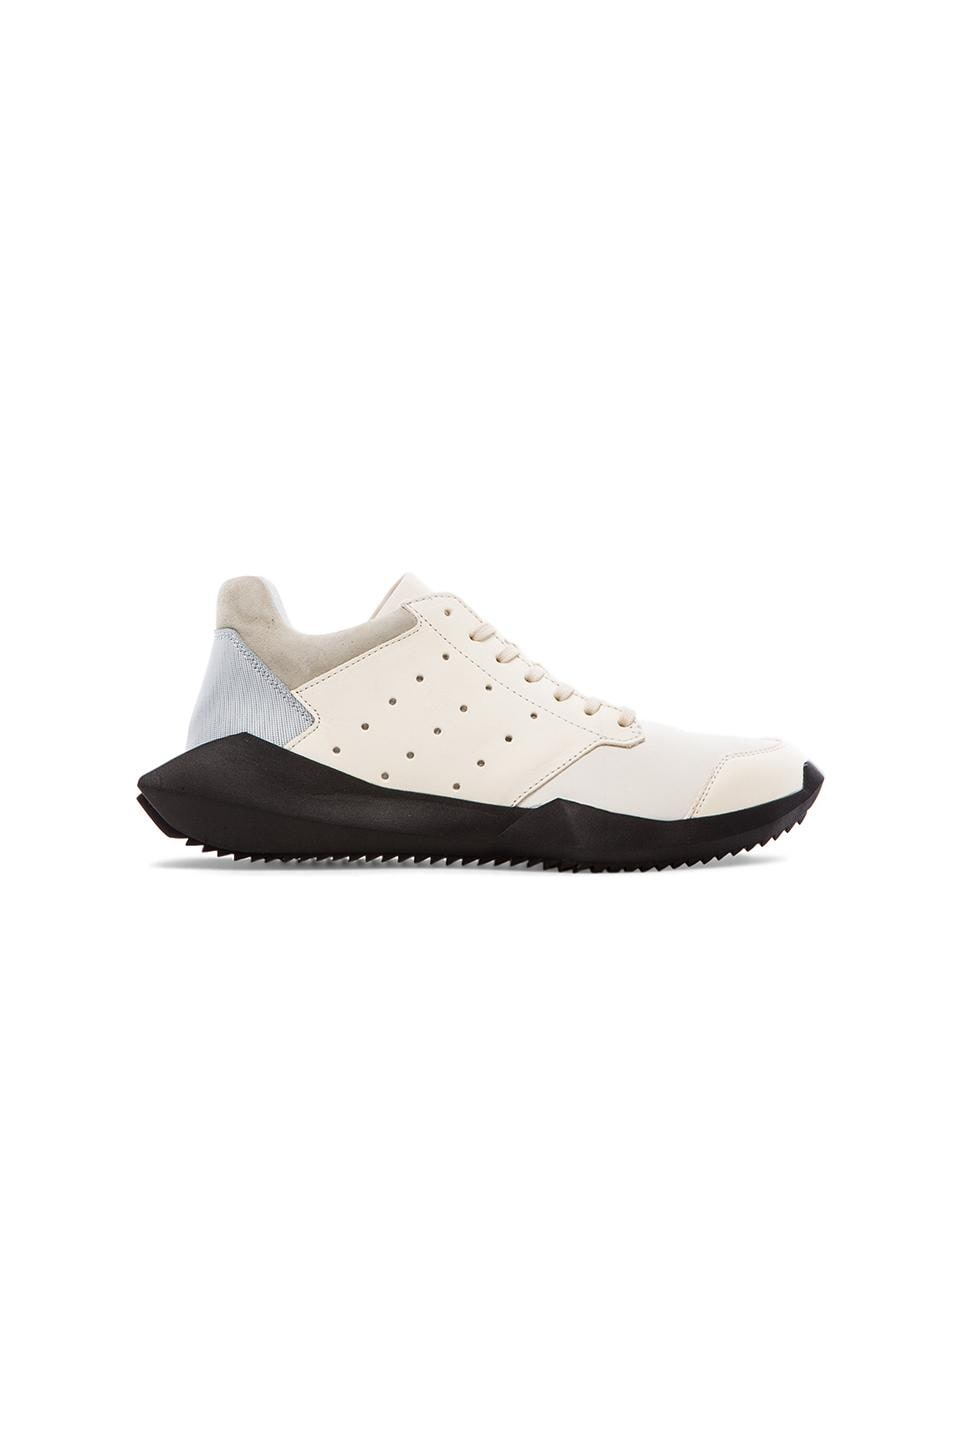 adidas by Rick Owens Tech Runner in White & Black